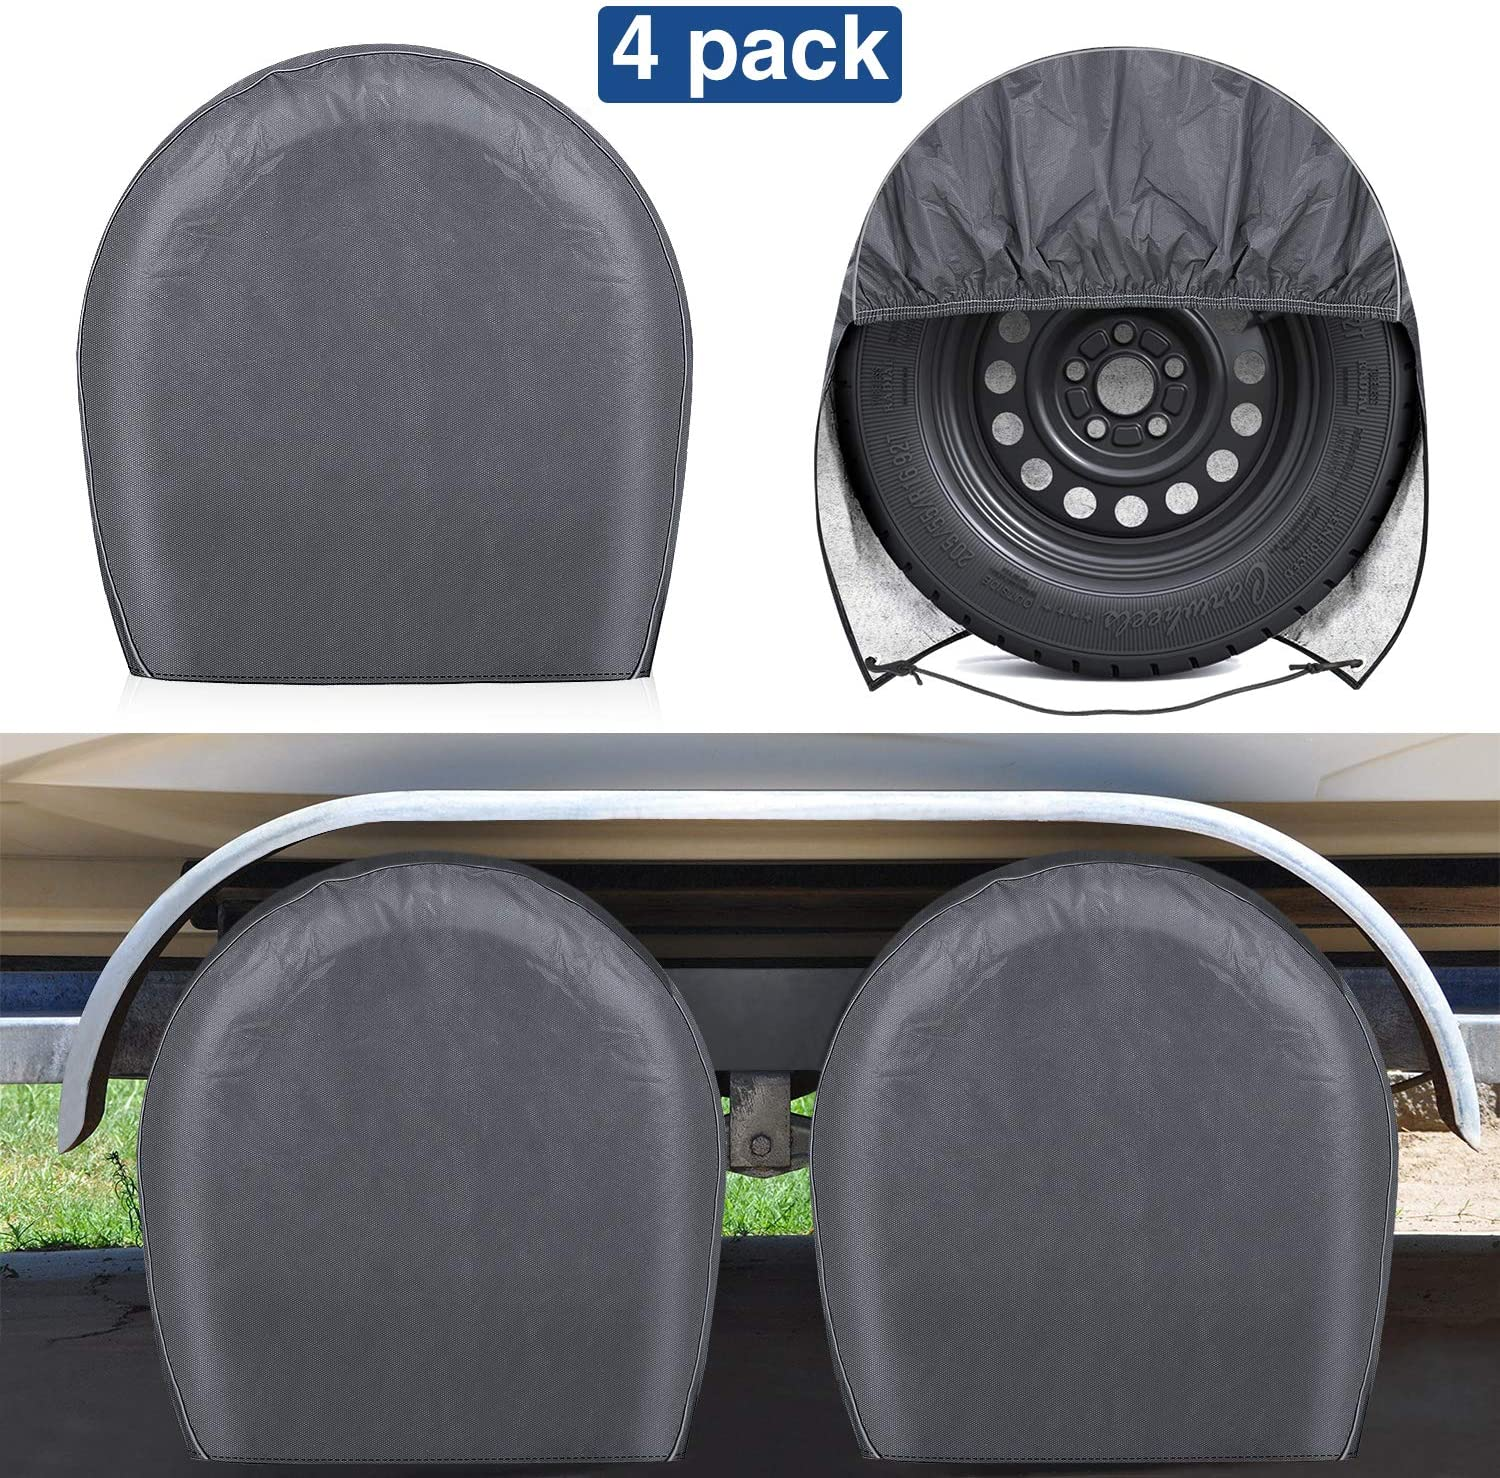 """RVMasking 2 Tire Covers 4 Pack - Heavy Duty Waterproof PVC Tire Protectors with Cotton Lining for Trailer Camper Truck Auto, Fits 26.75""""- 29'' Tire Diameters, Gray"""